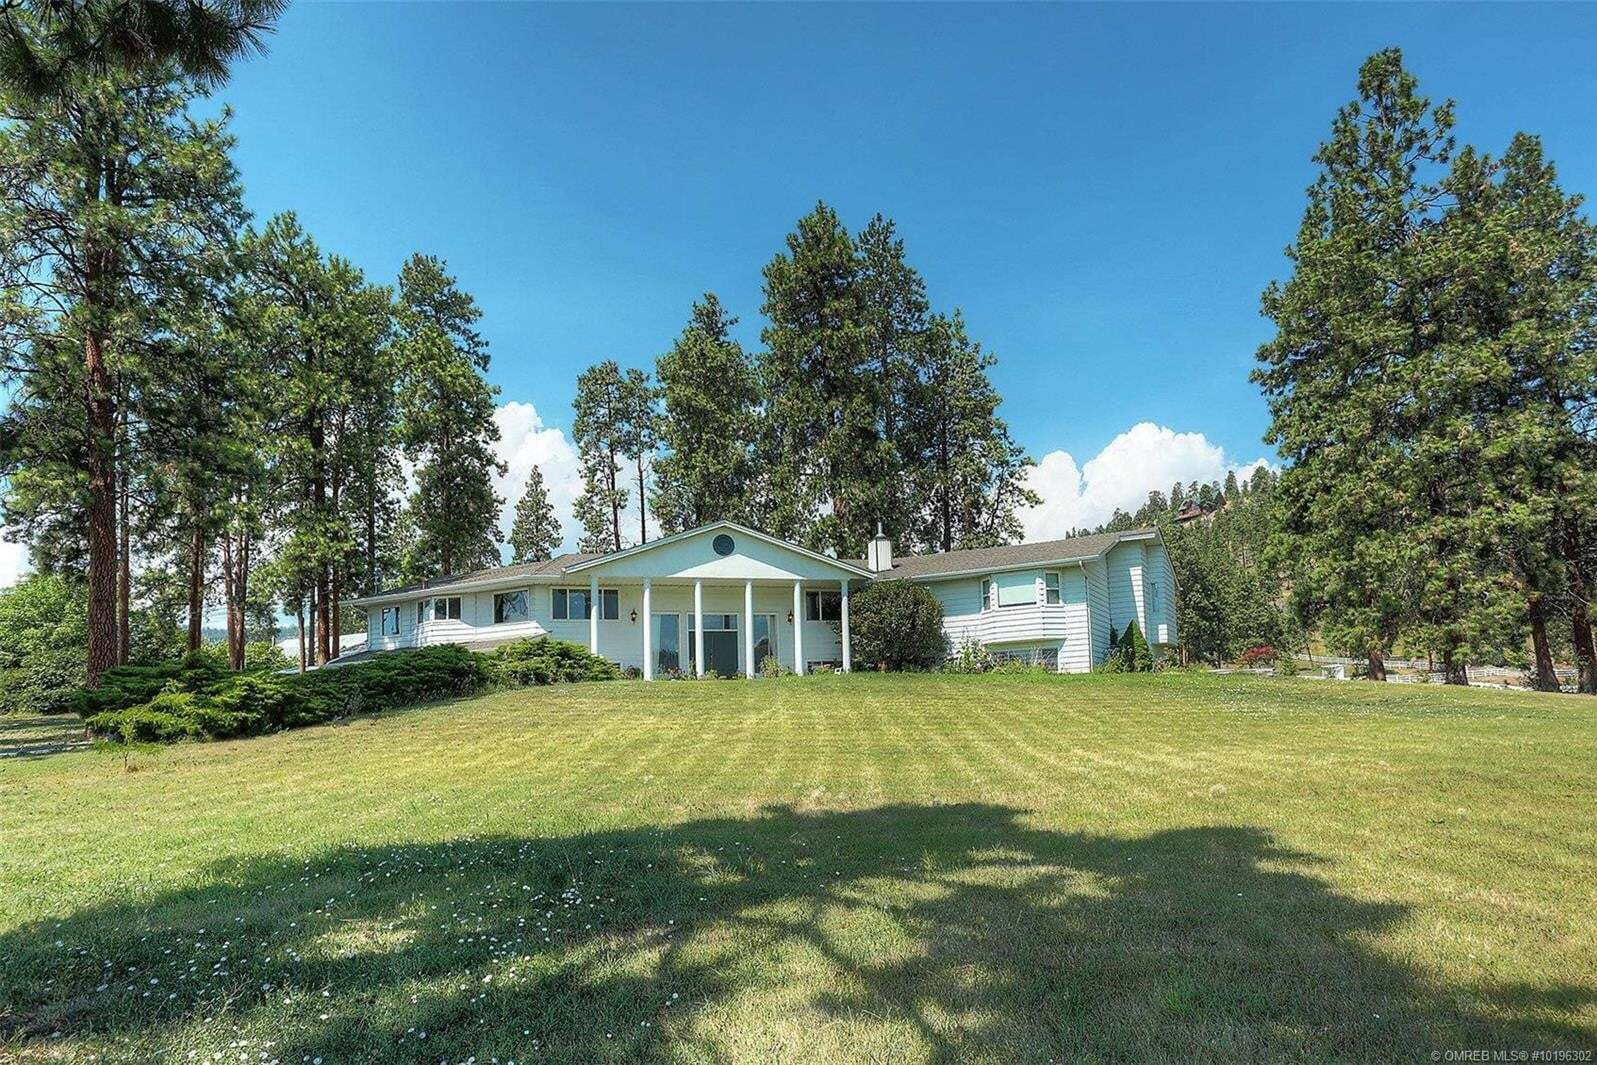 Home for sale at 720 Curtis Rd Kelowna British Columbia - MLS: 10196302